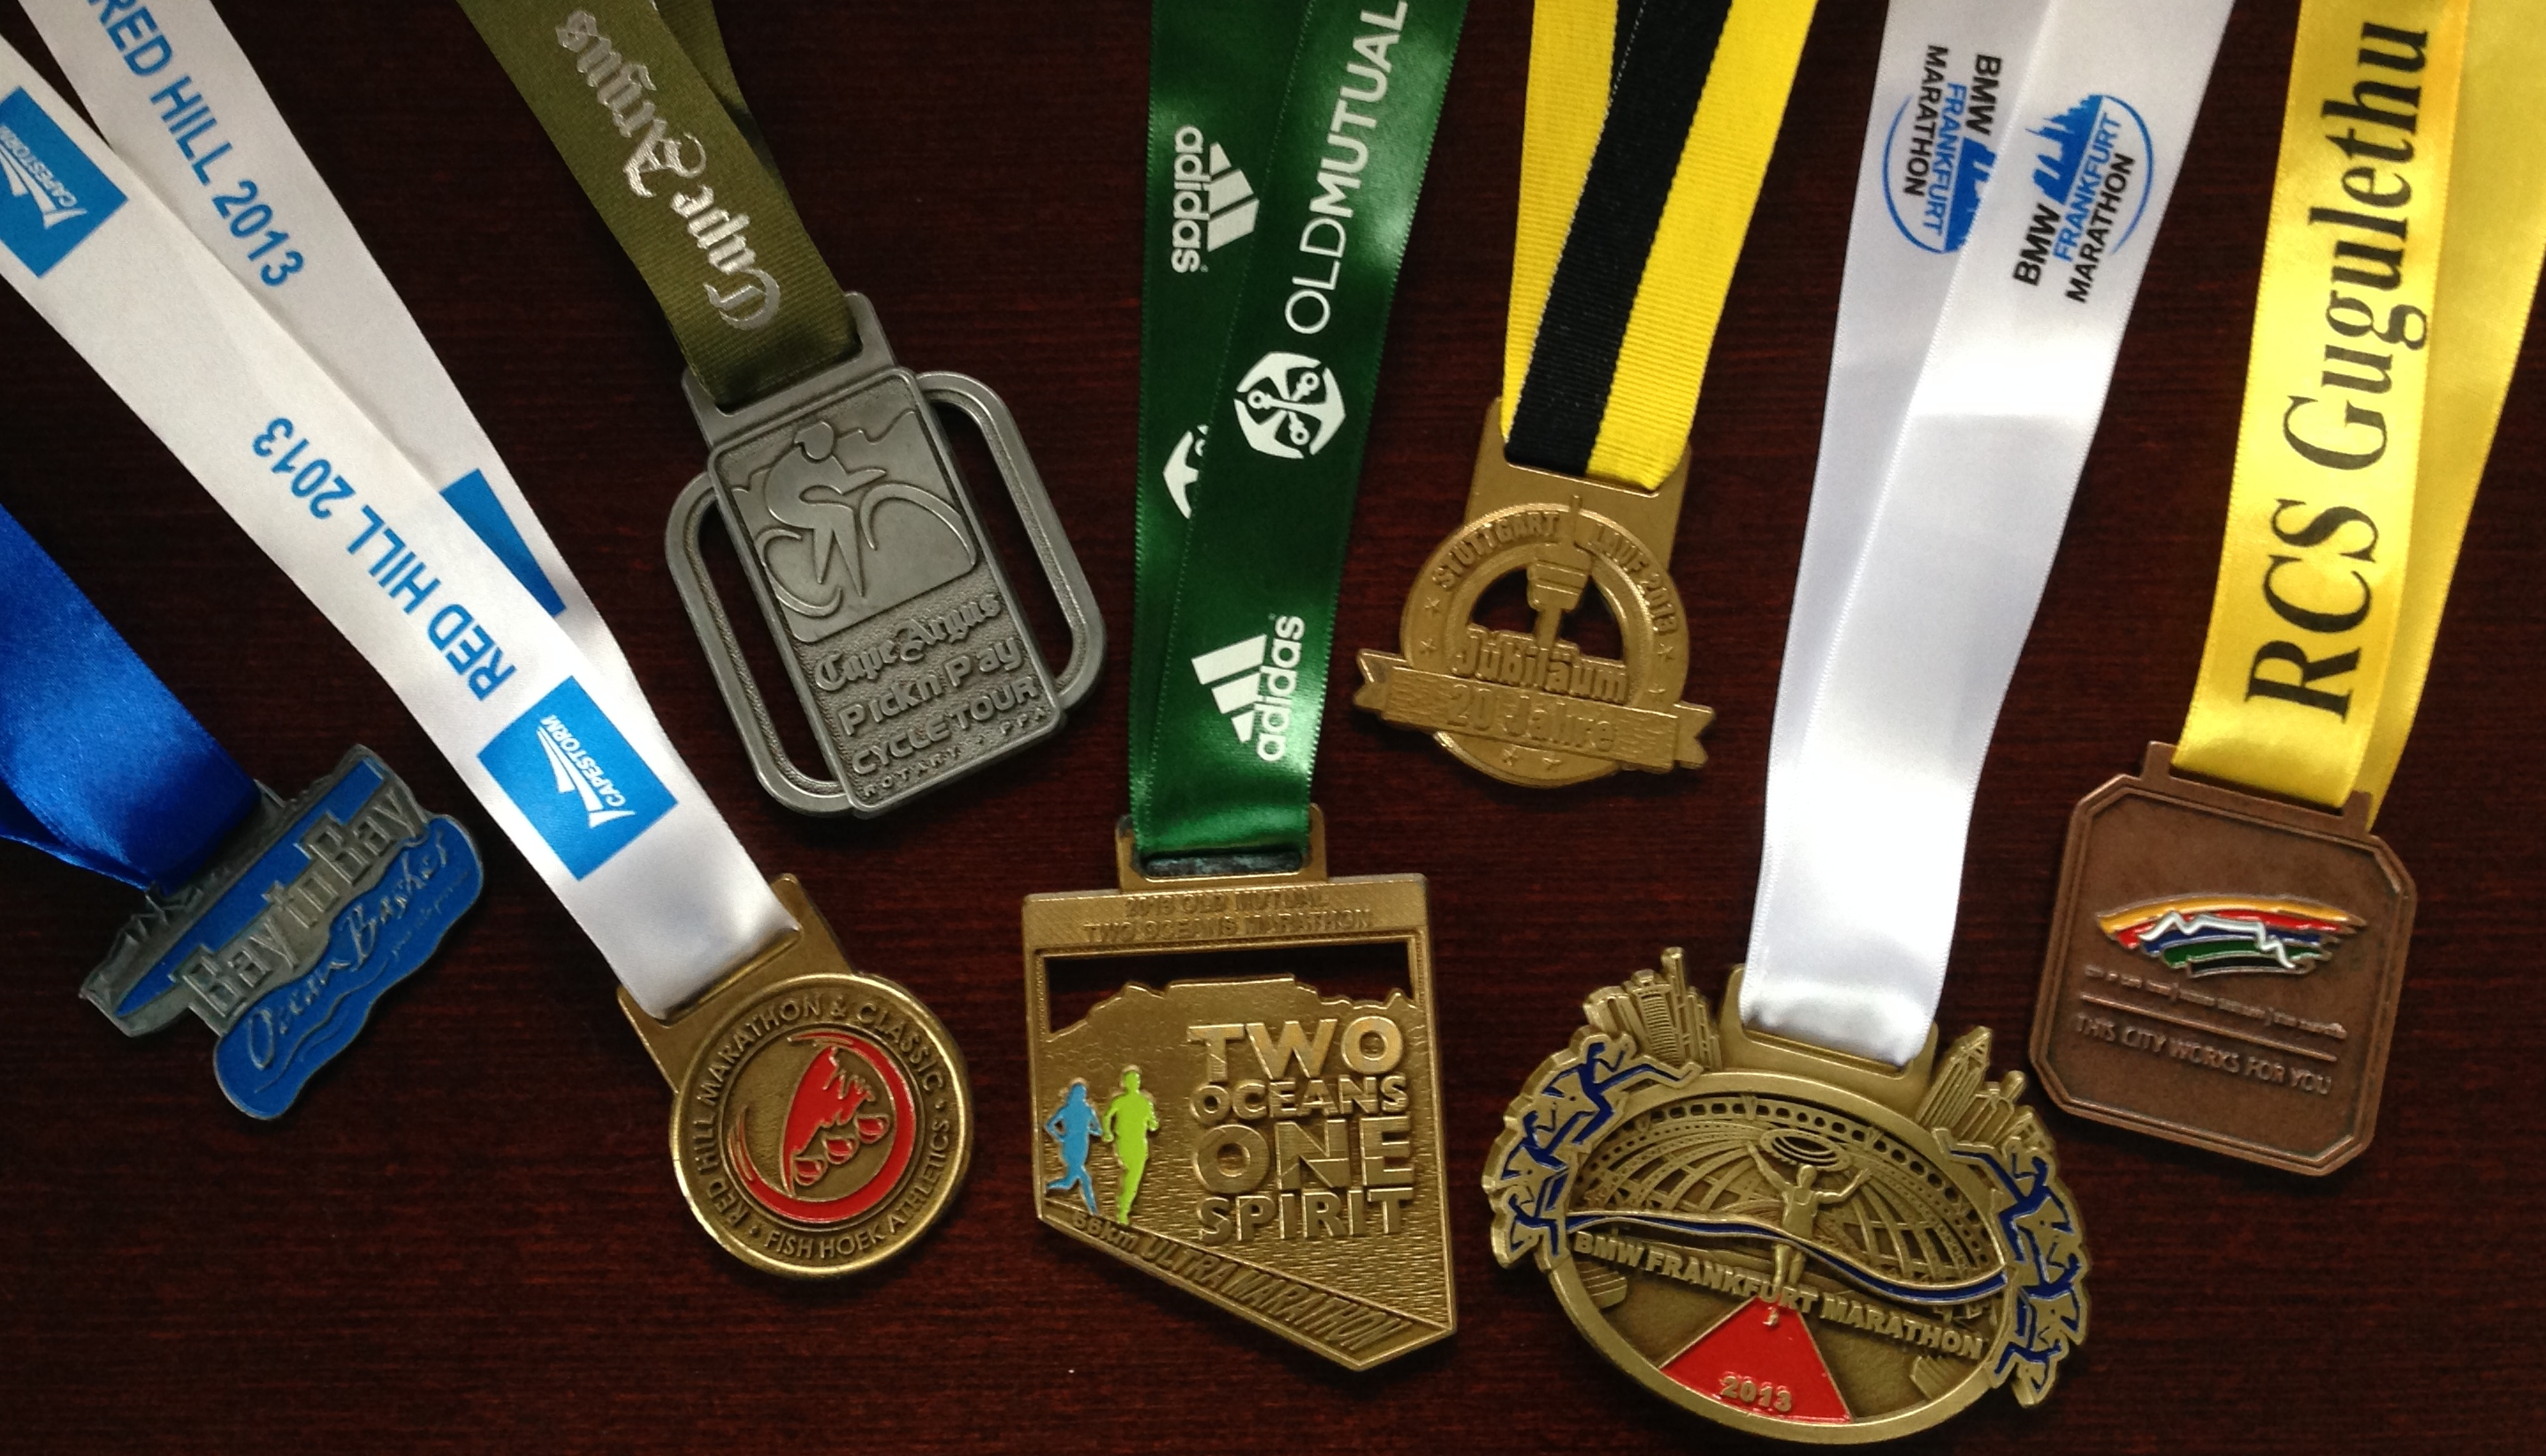 2013 medal collection